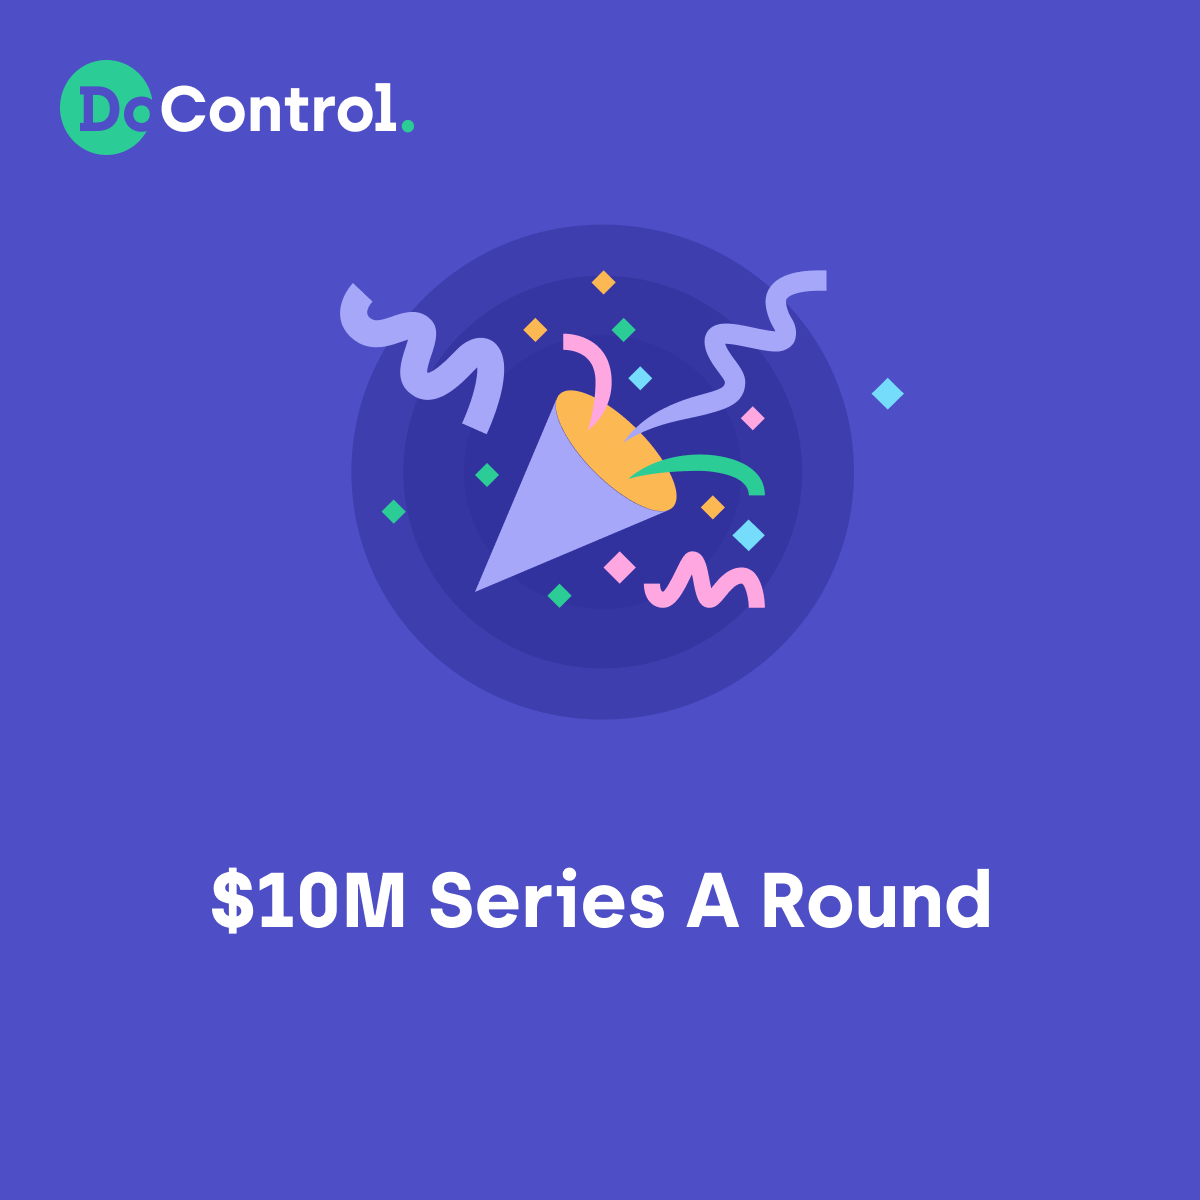 Announcing Our Product Launch and Series A Round